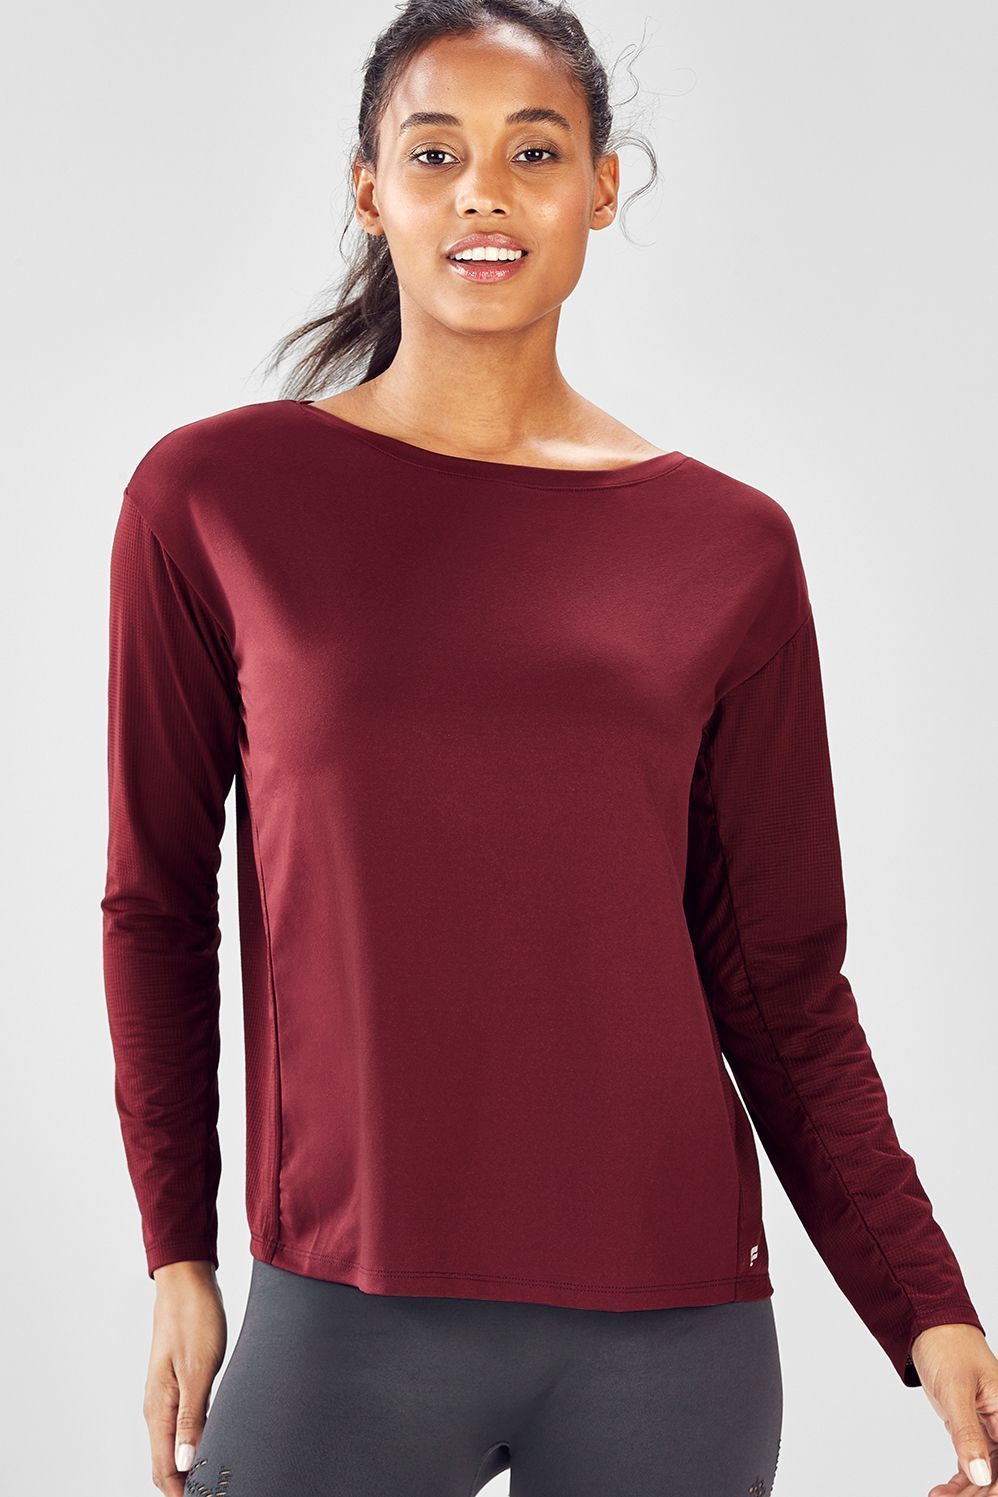 Cashel Cinched L/S Top Black Cherry Active wear tops